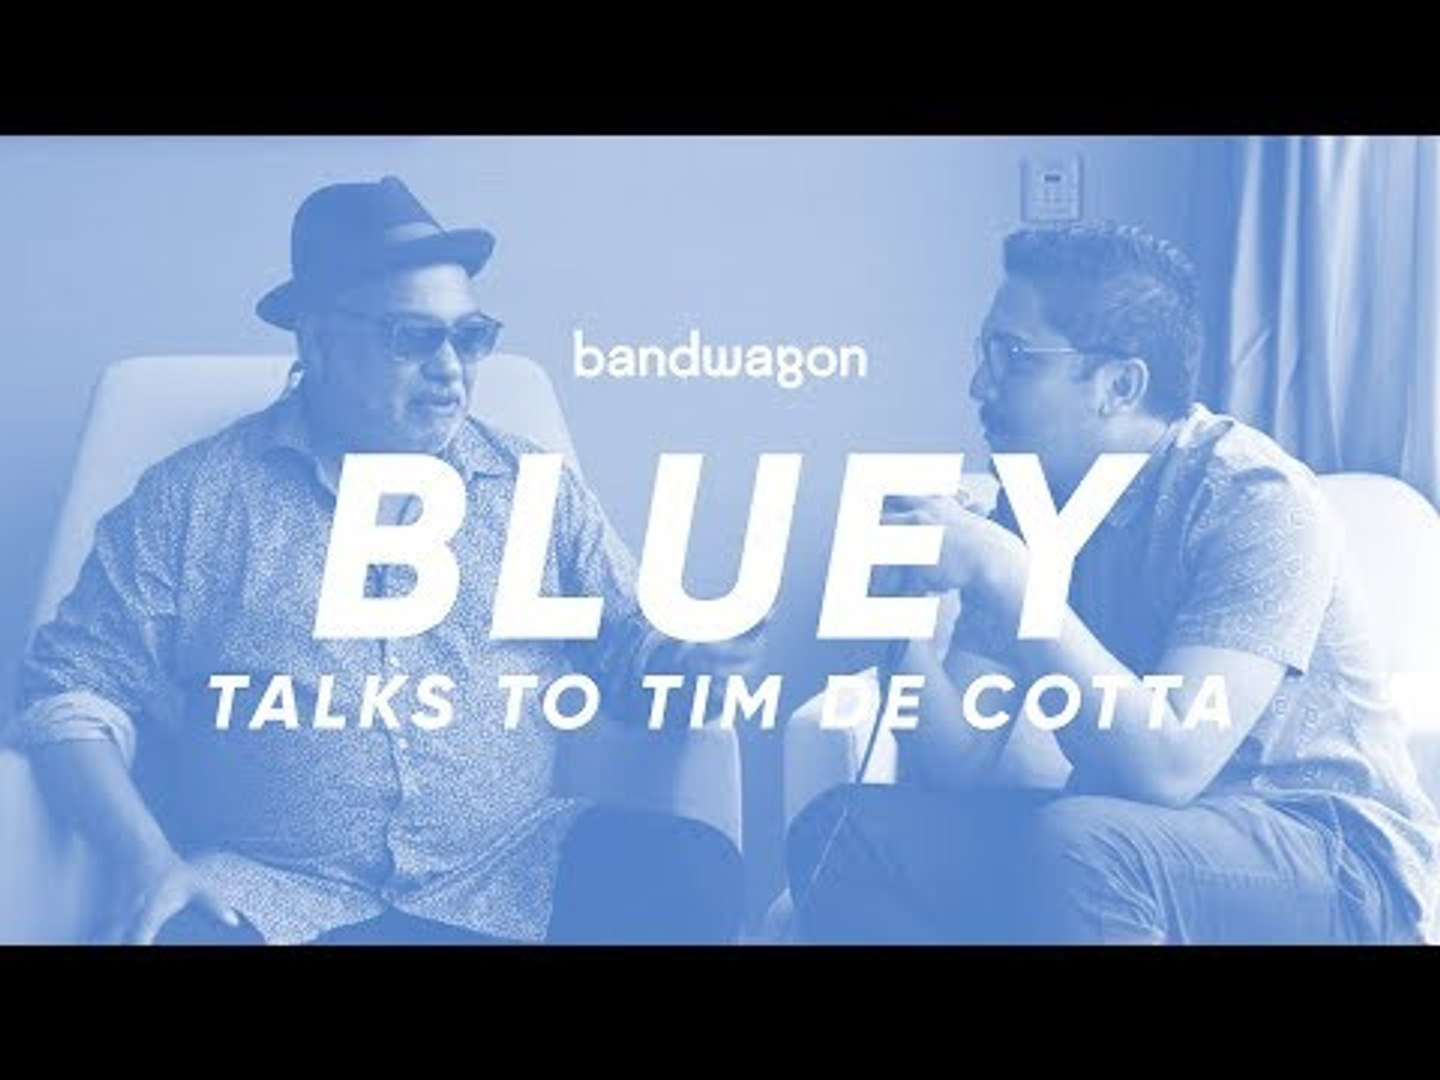 Tim De Cotta has a conversation with Bluey about football, Incognito and his childhood dream band